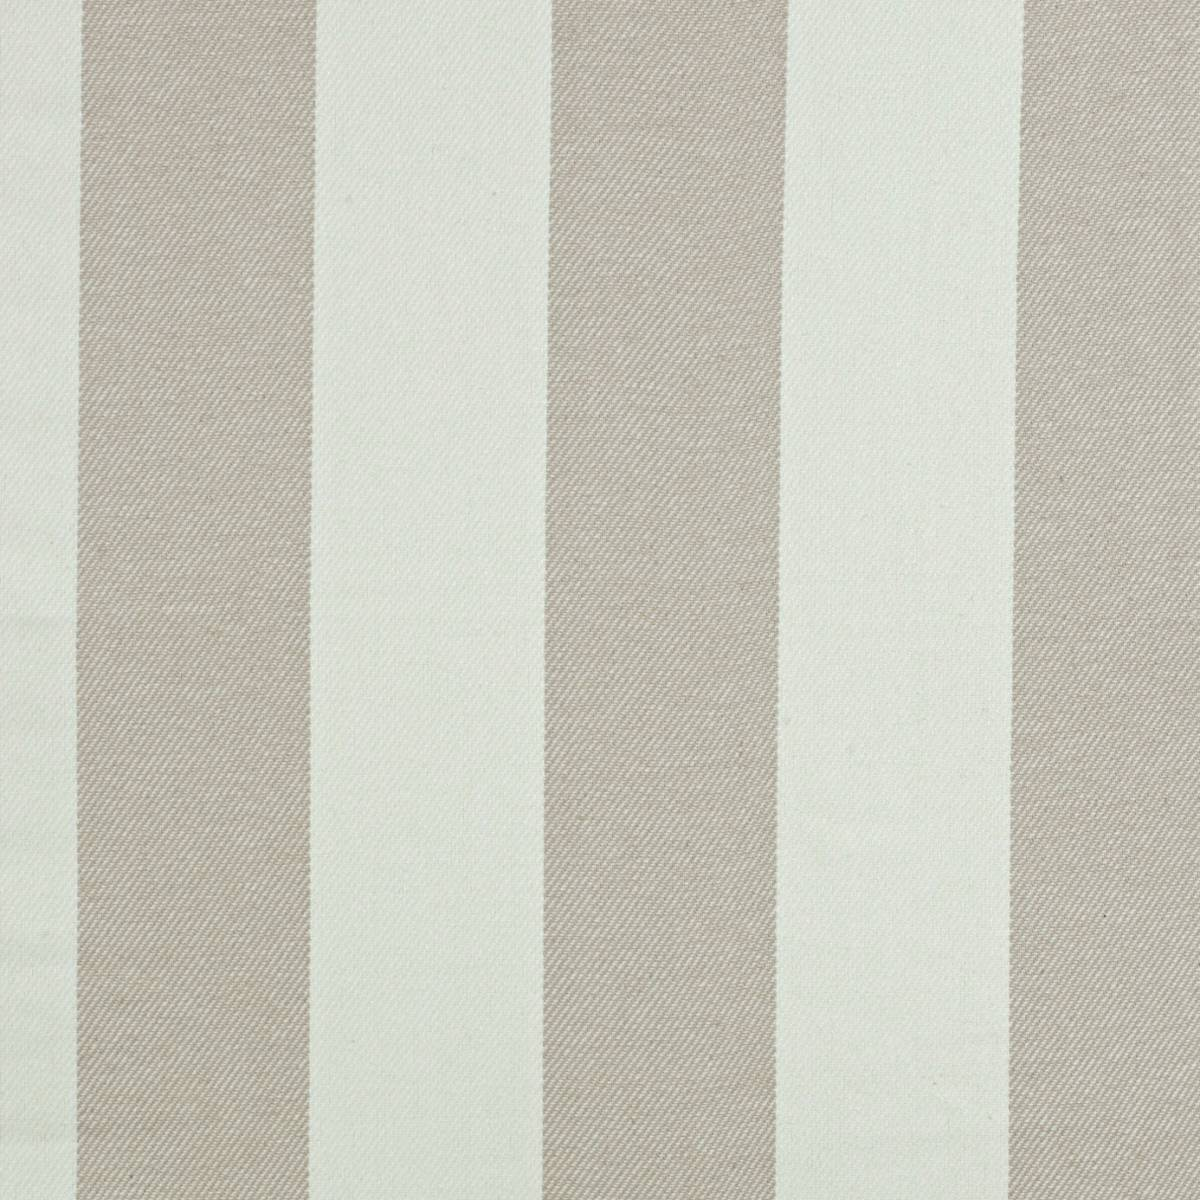 Roman Blinds In Kendal Fabric Sandstone 1757 510